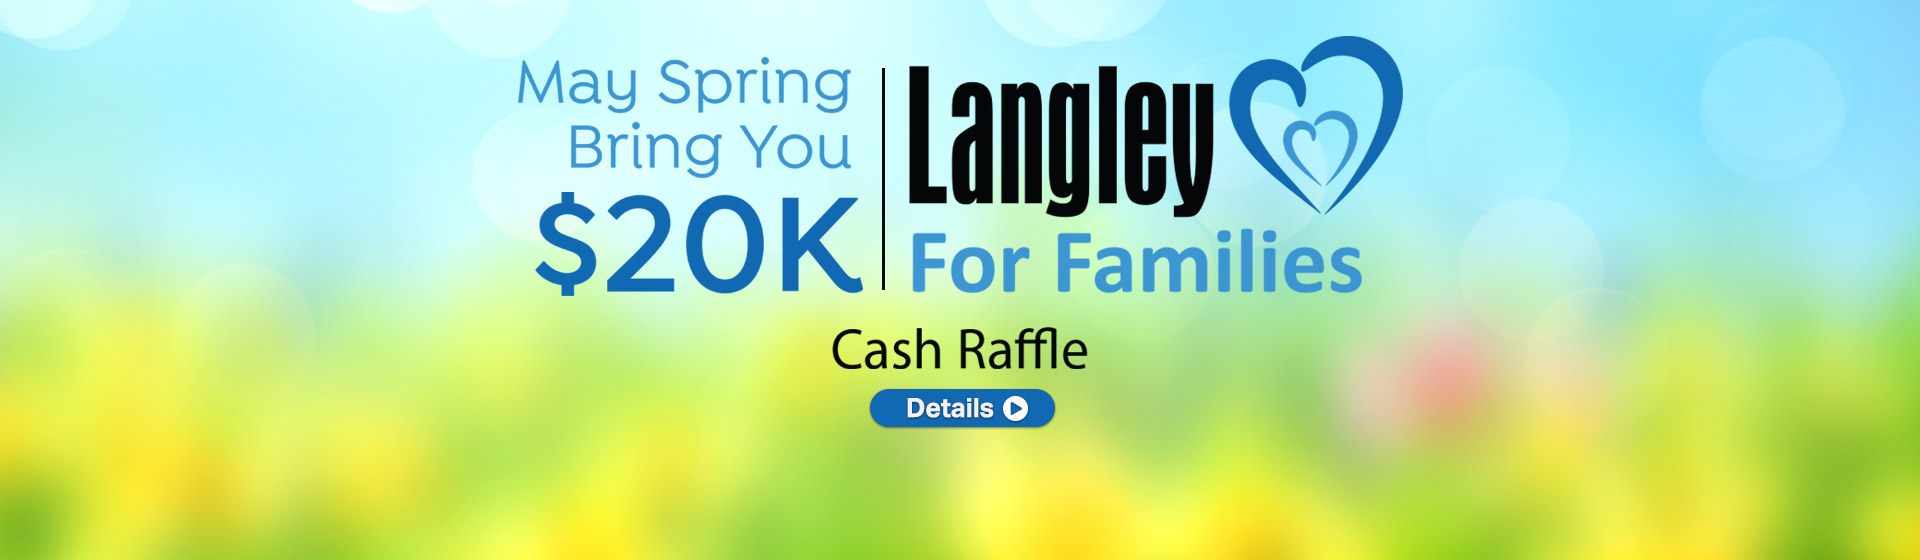 Langley for Families Foundation Cash Raffle - Win 20k! - Click here for details.